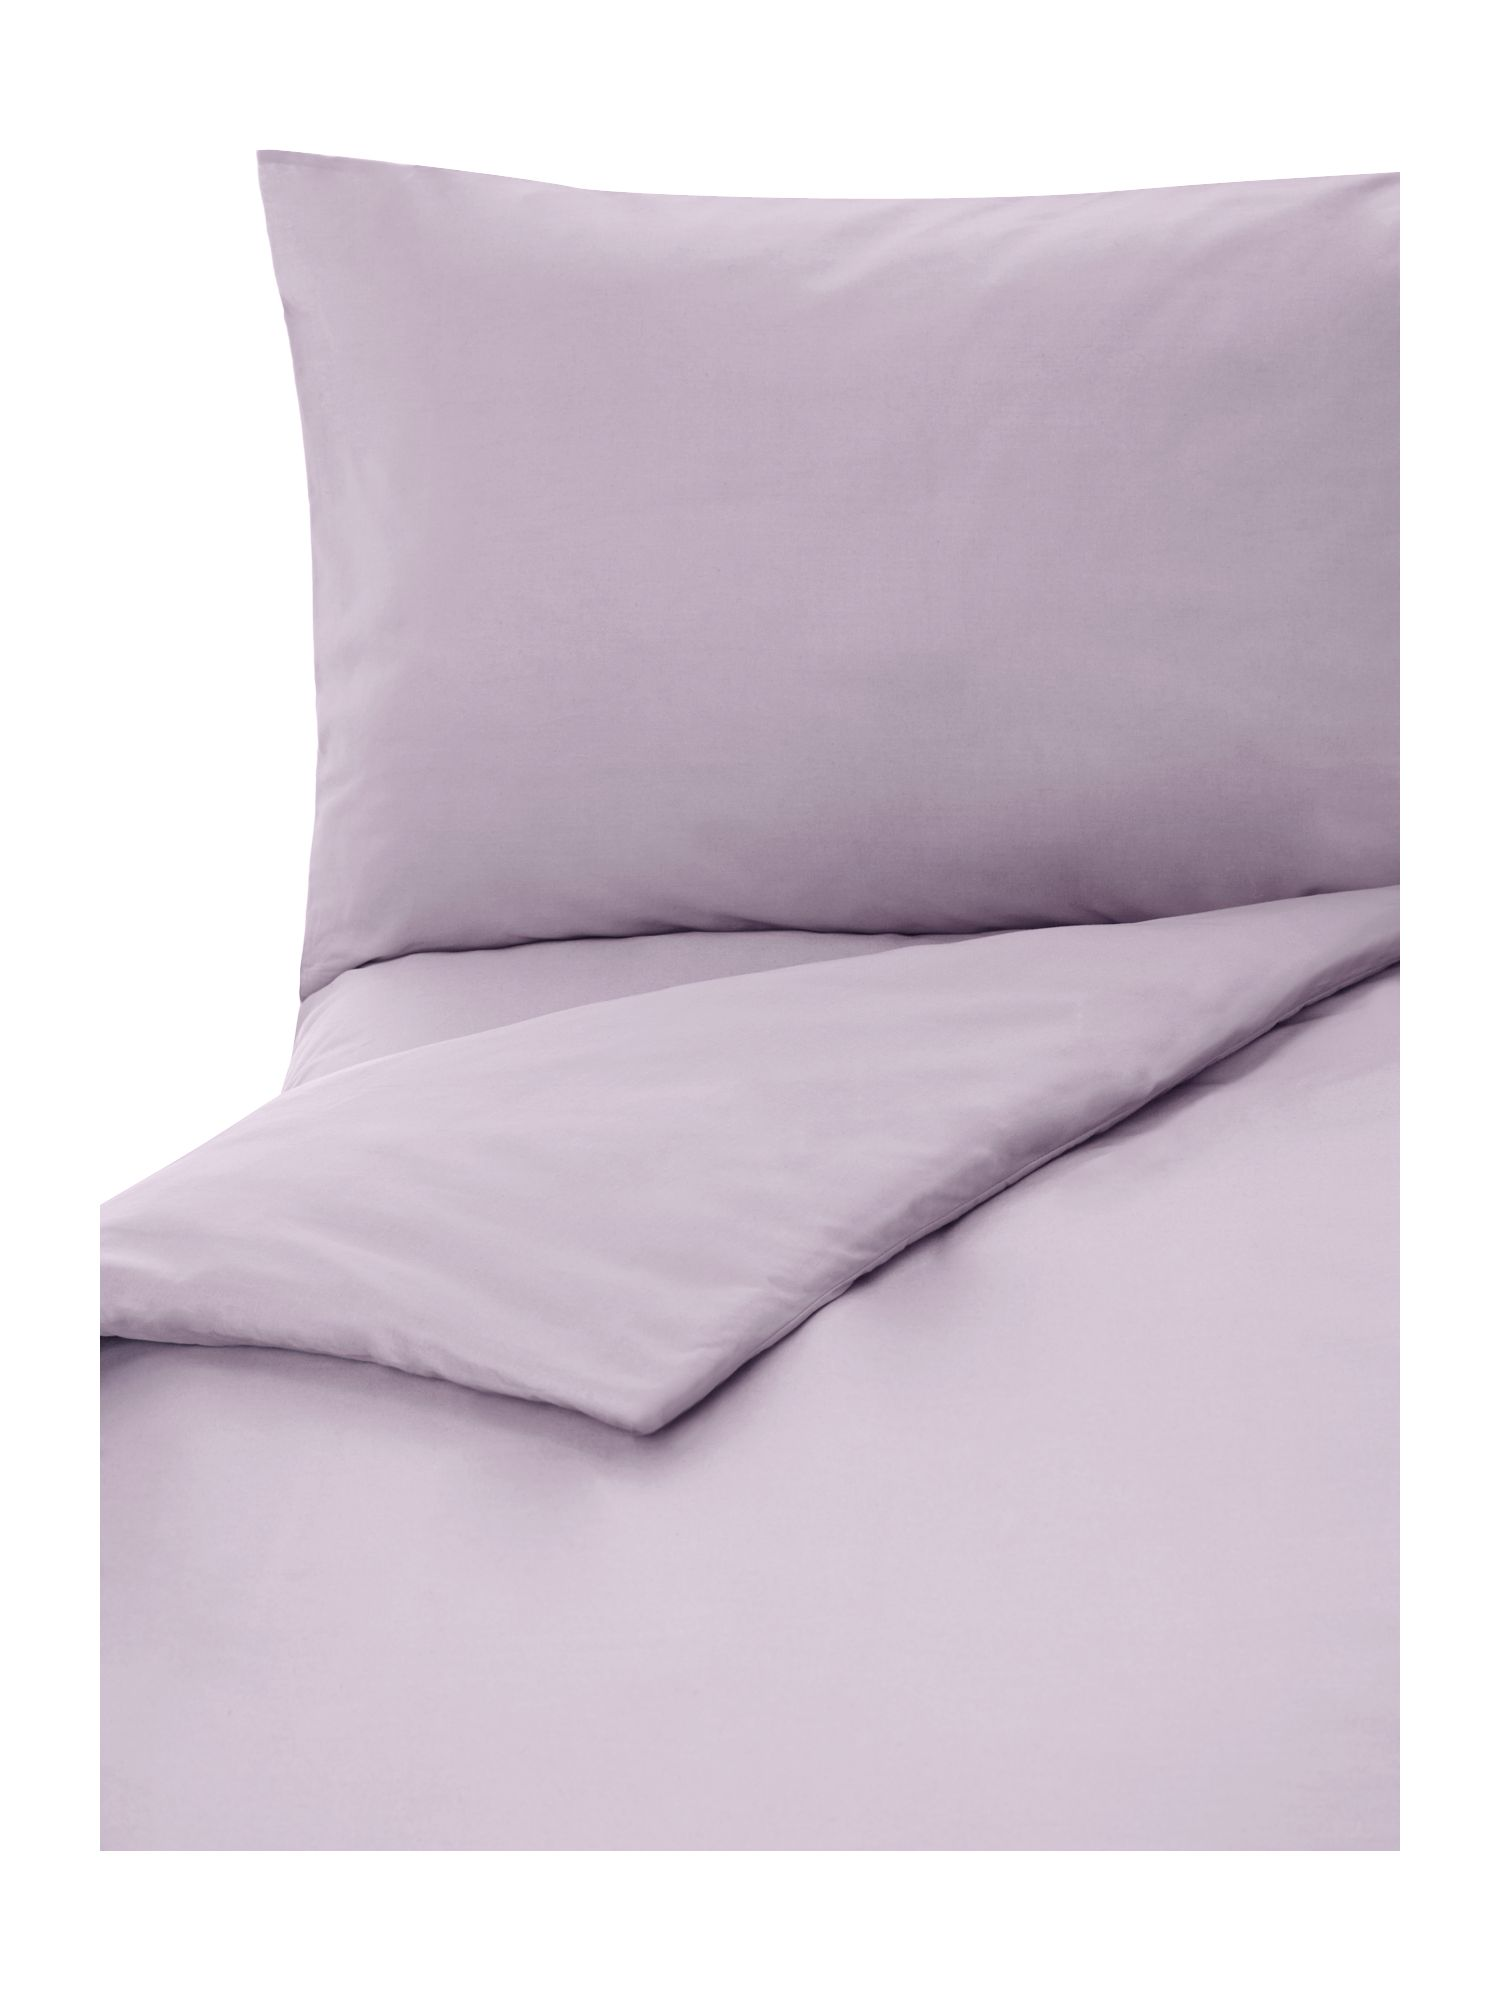 100% cotton plain dye sheeting in lilac